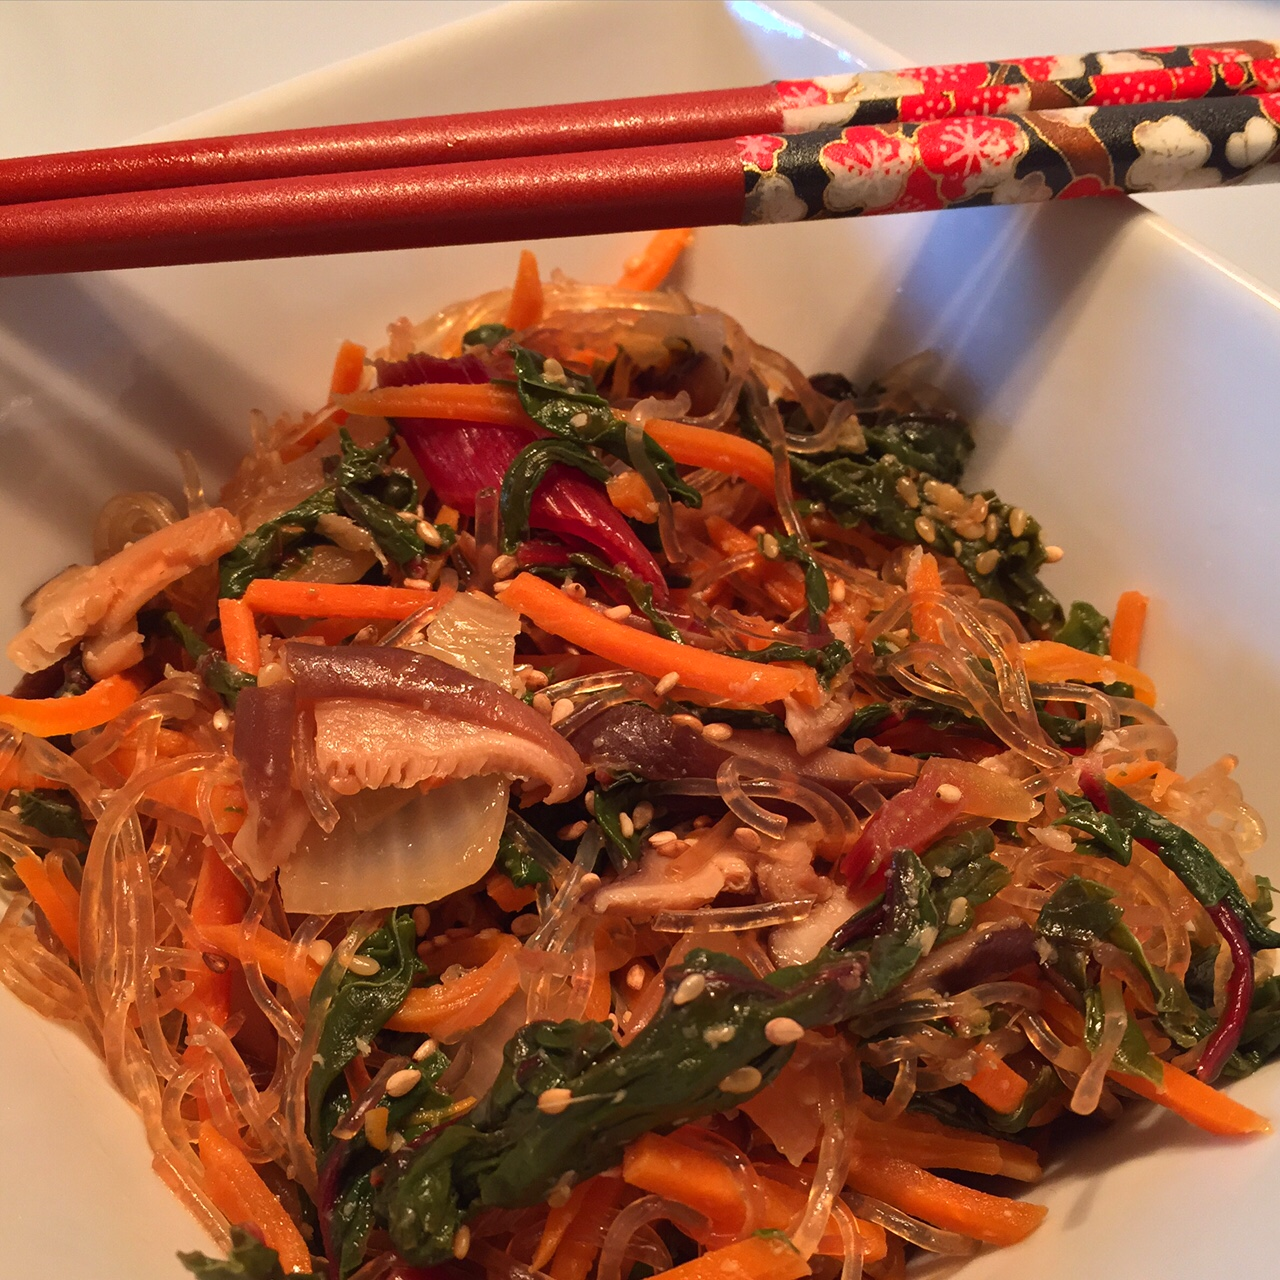 Kelp noodles are neutral, so they readily absorb the flavor and seasoning of whatever dish they're added to...